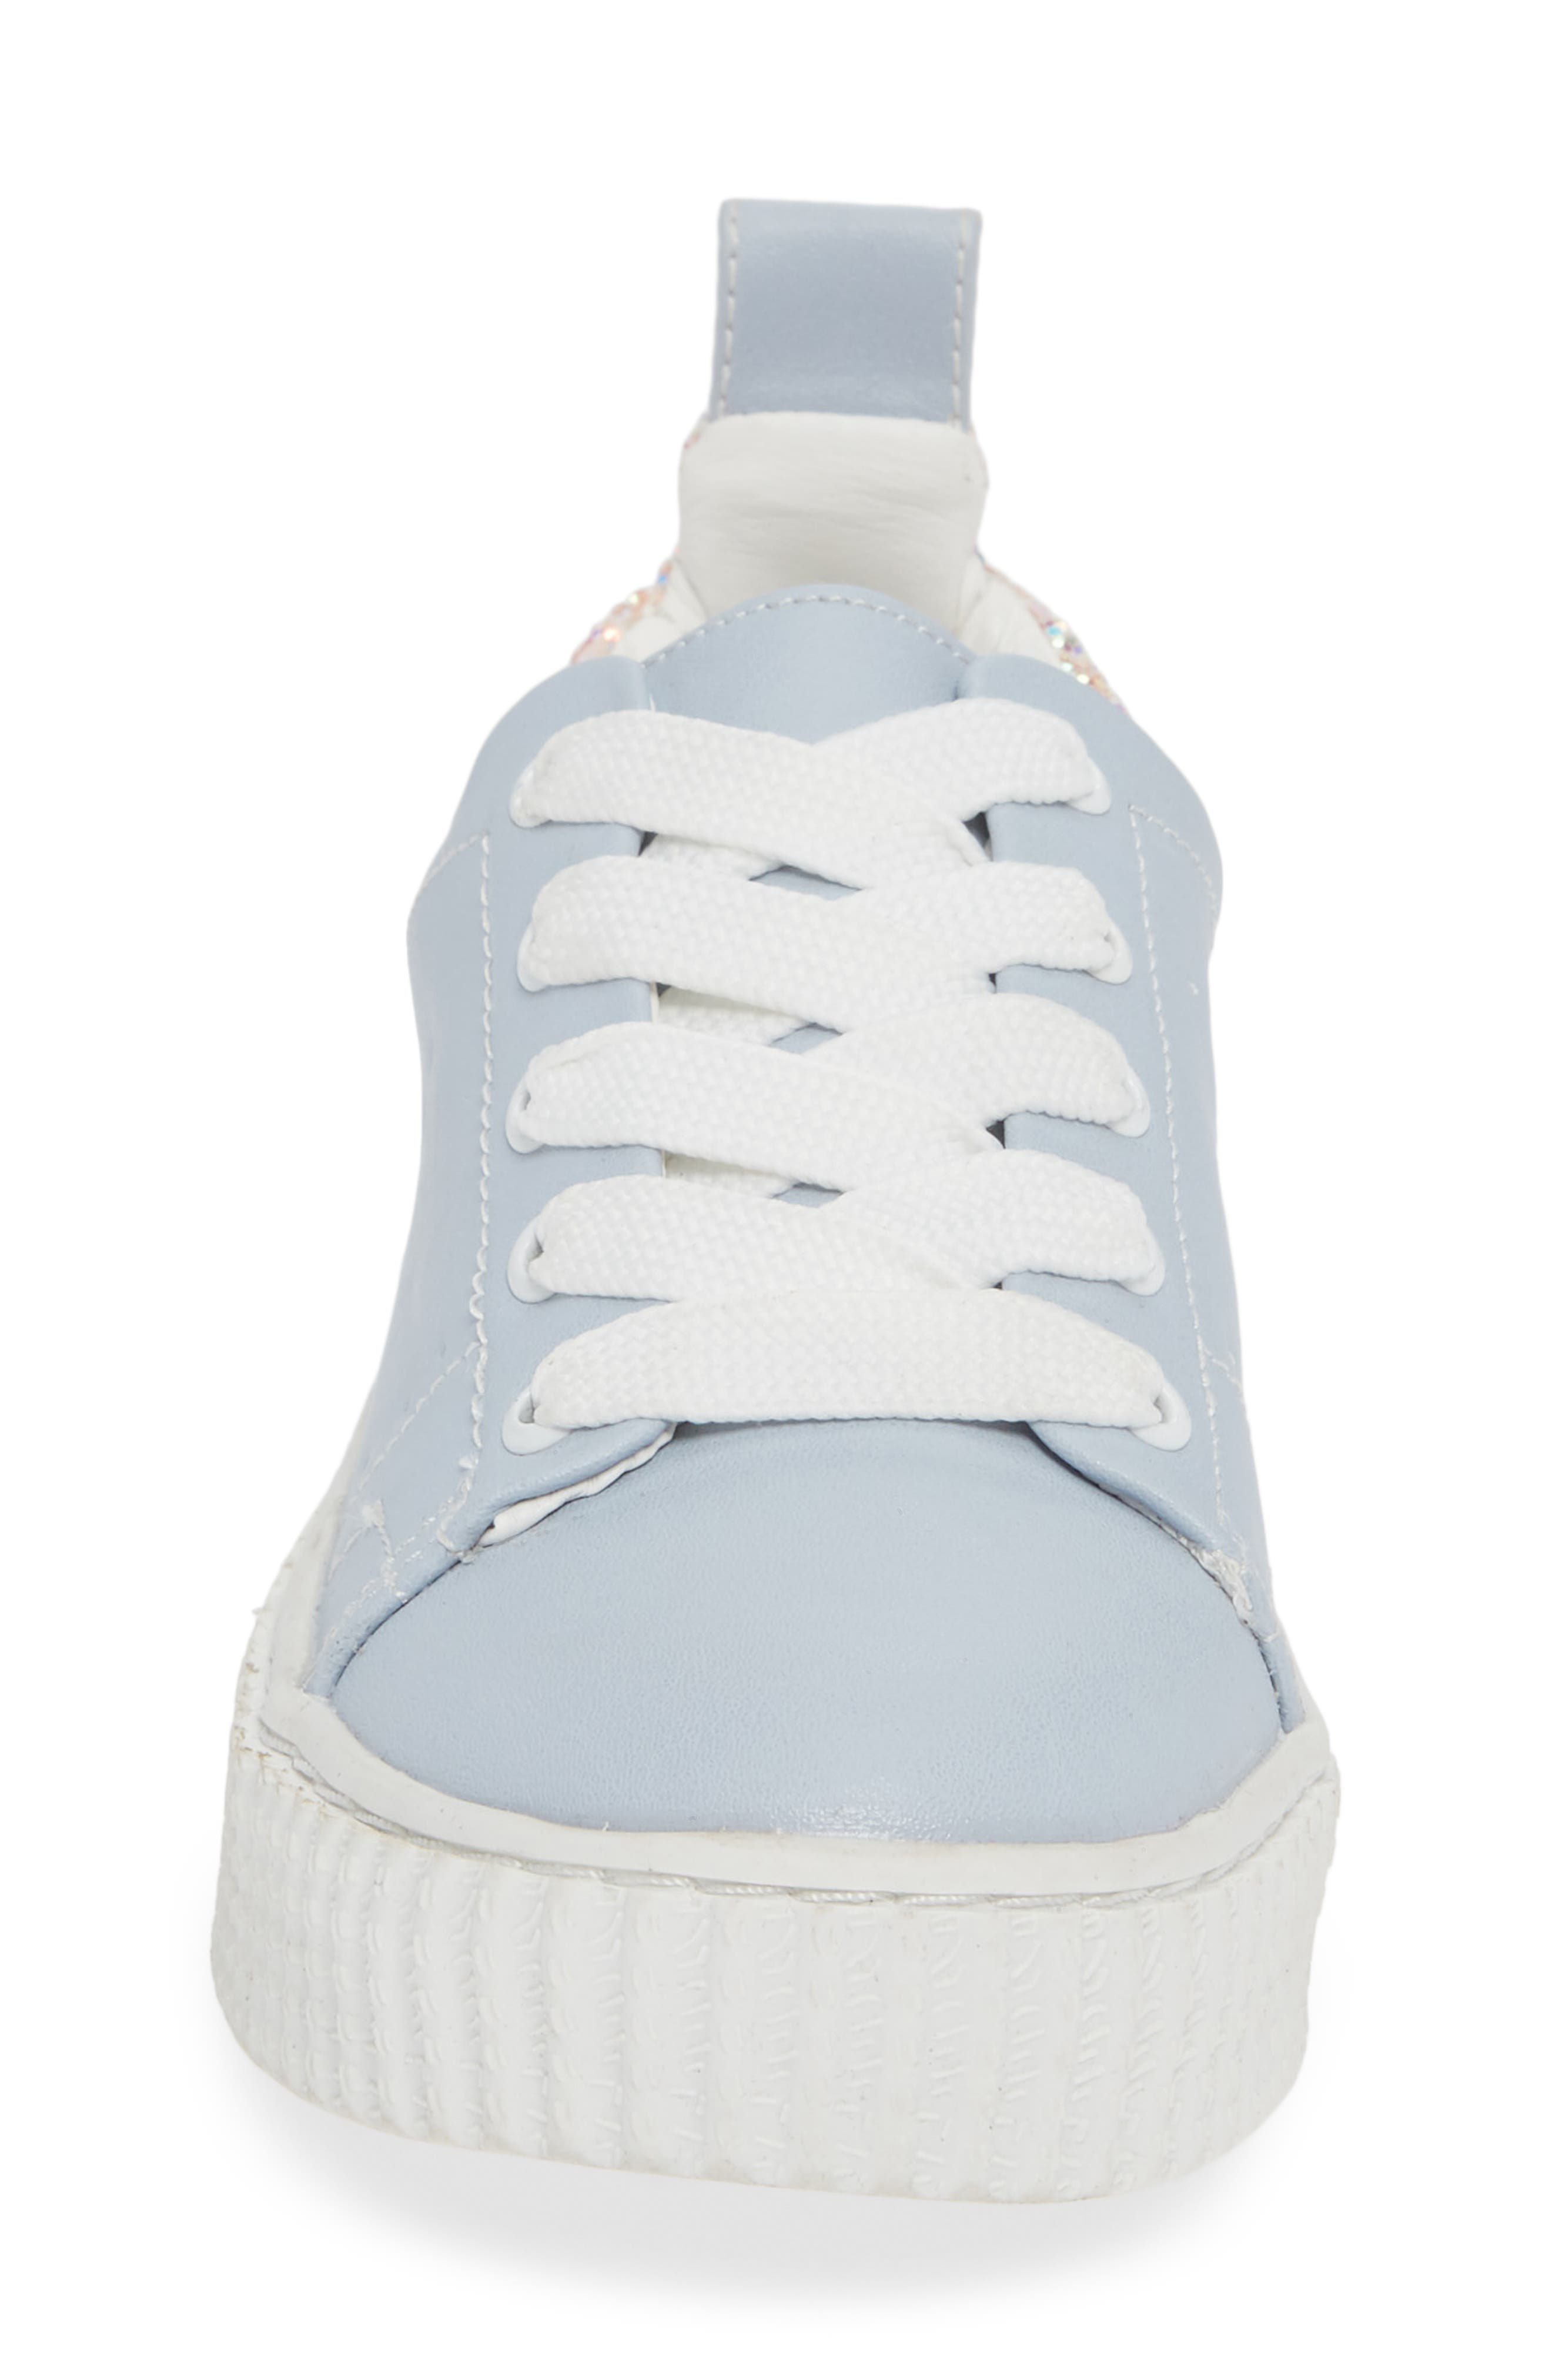 Wren Glitter Heel Sneaker,                             Alternate thumbnail 4, color,                             LIGHT BLUE